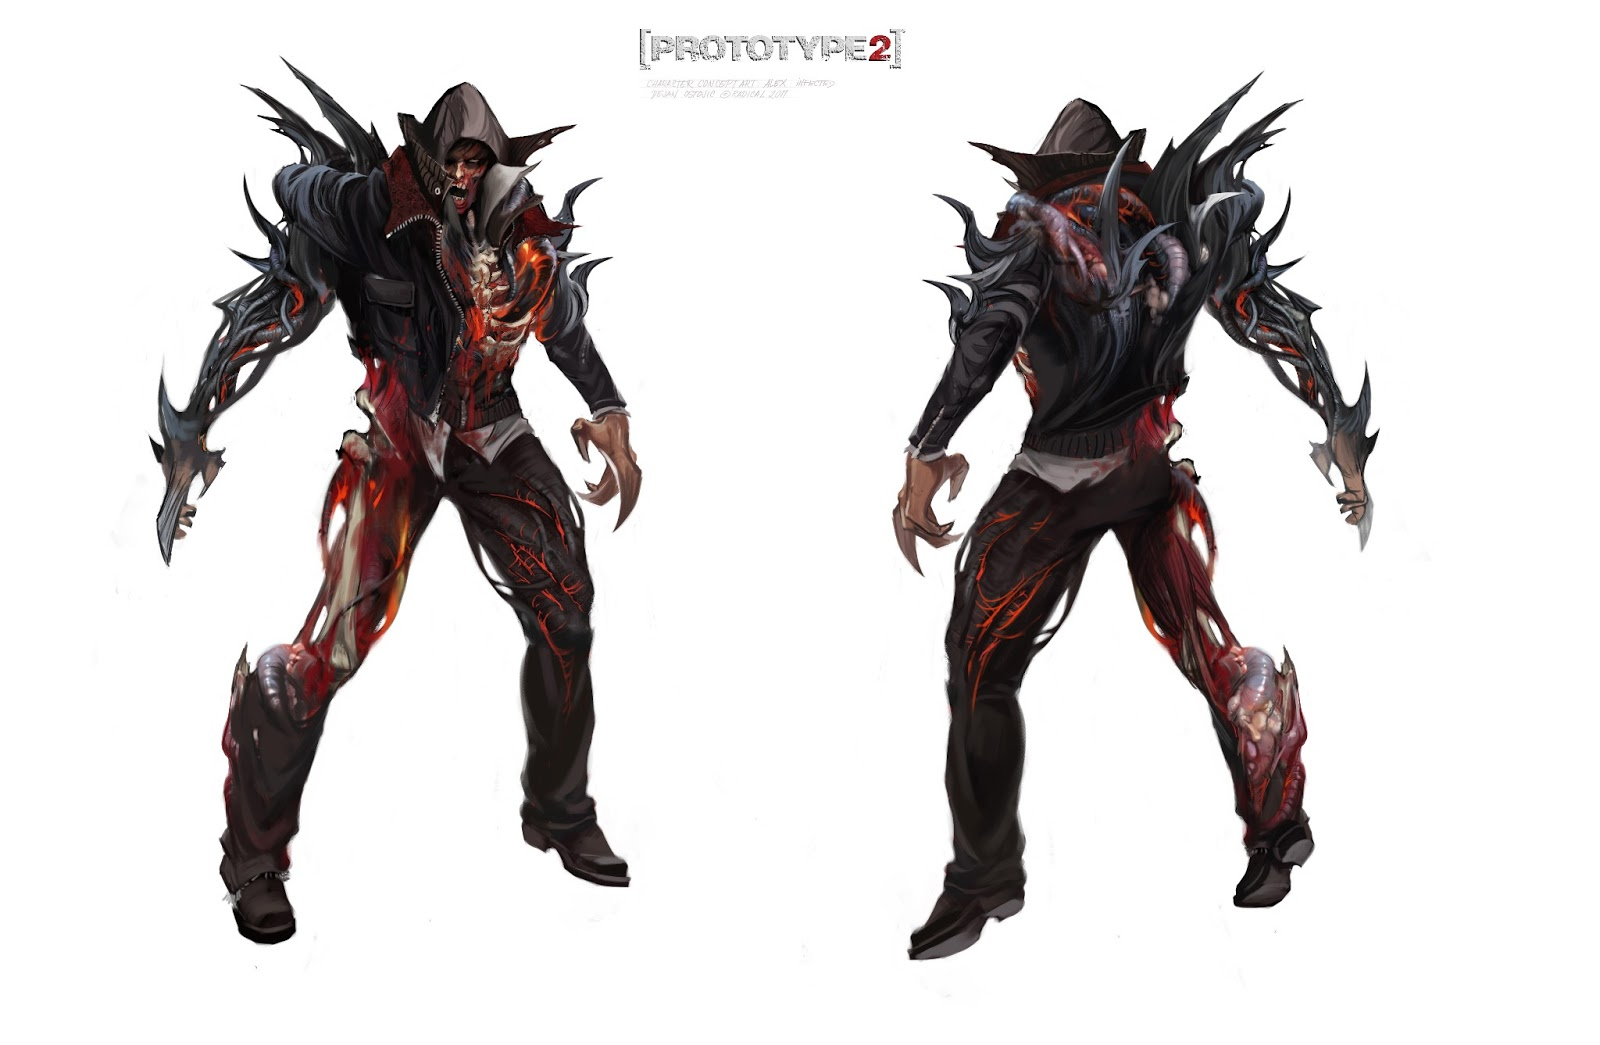 PROTOTYPE 2] (Video Game) - TV Tropes on